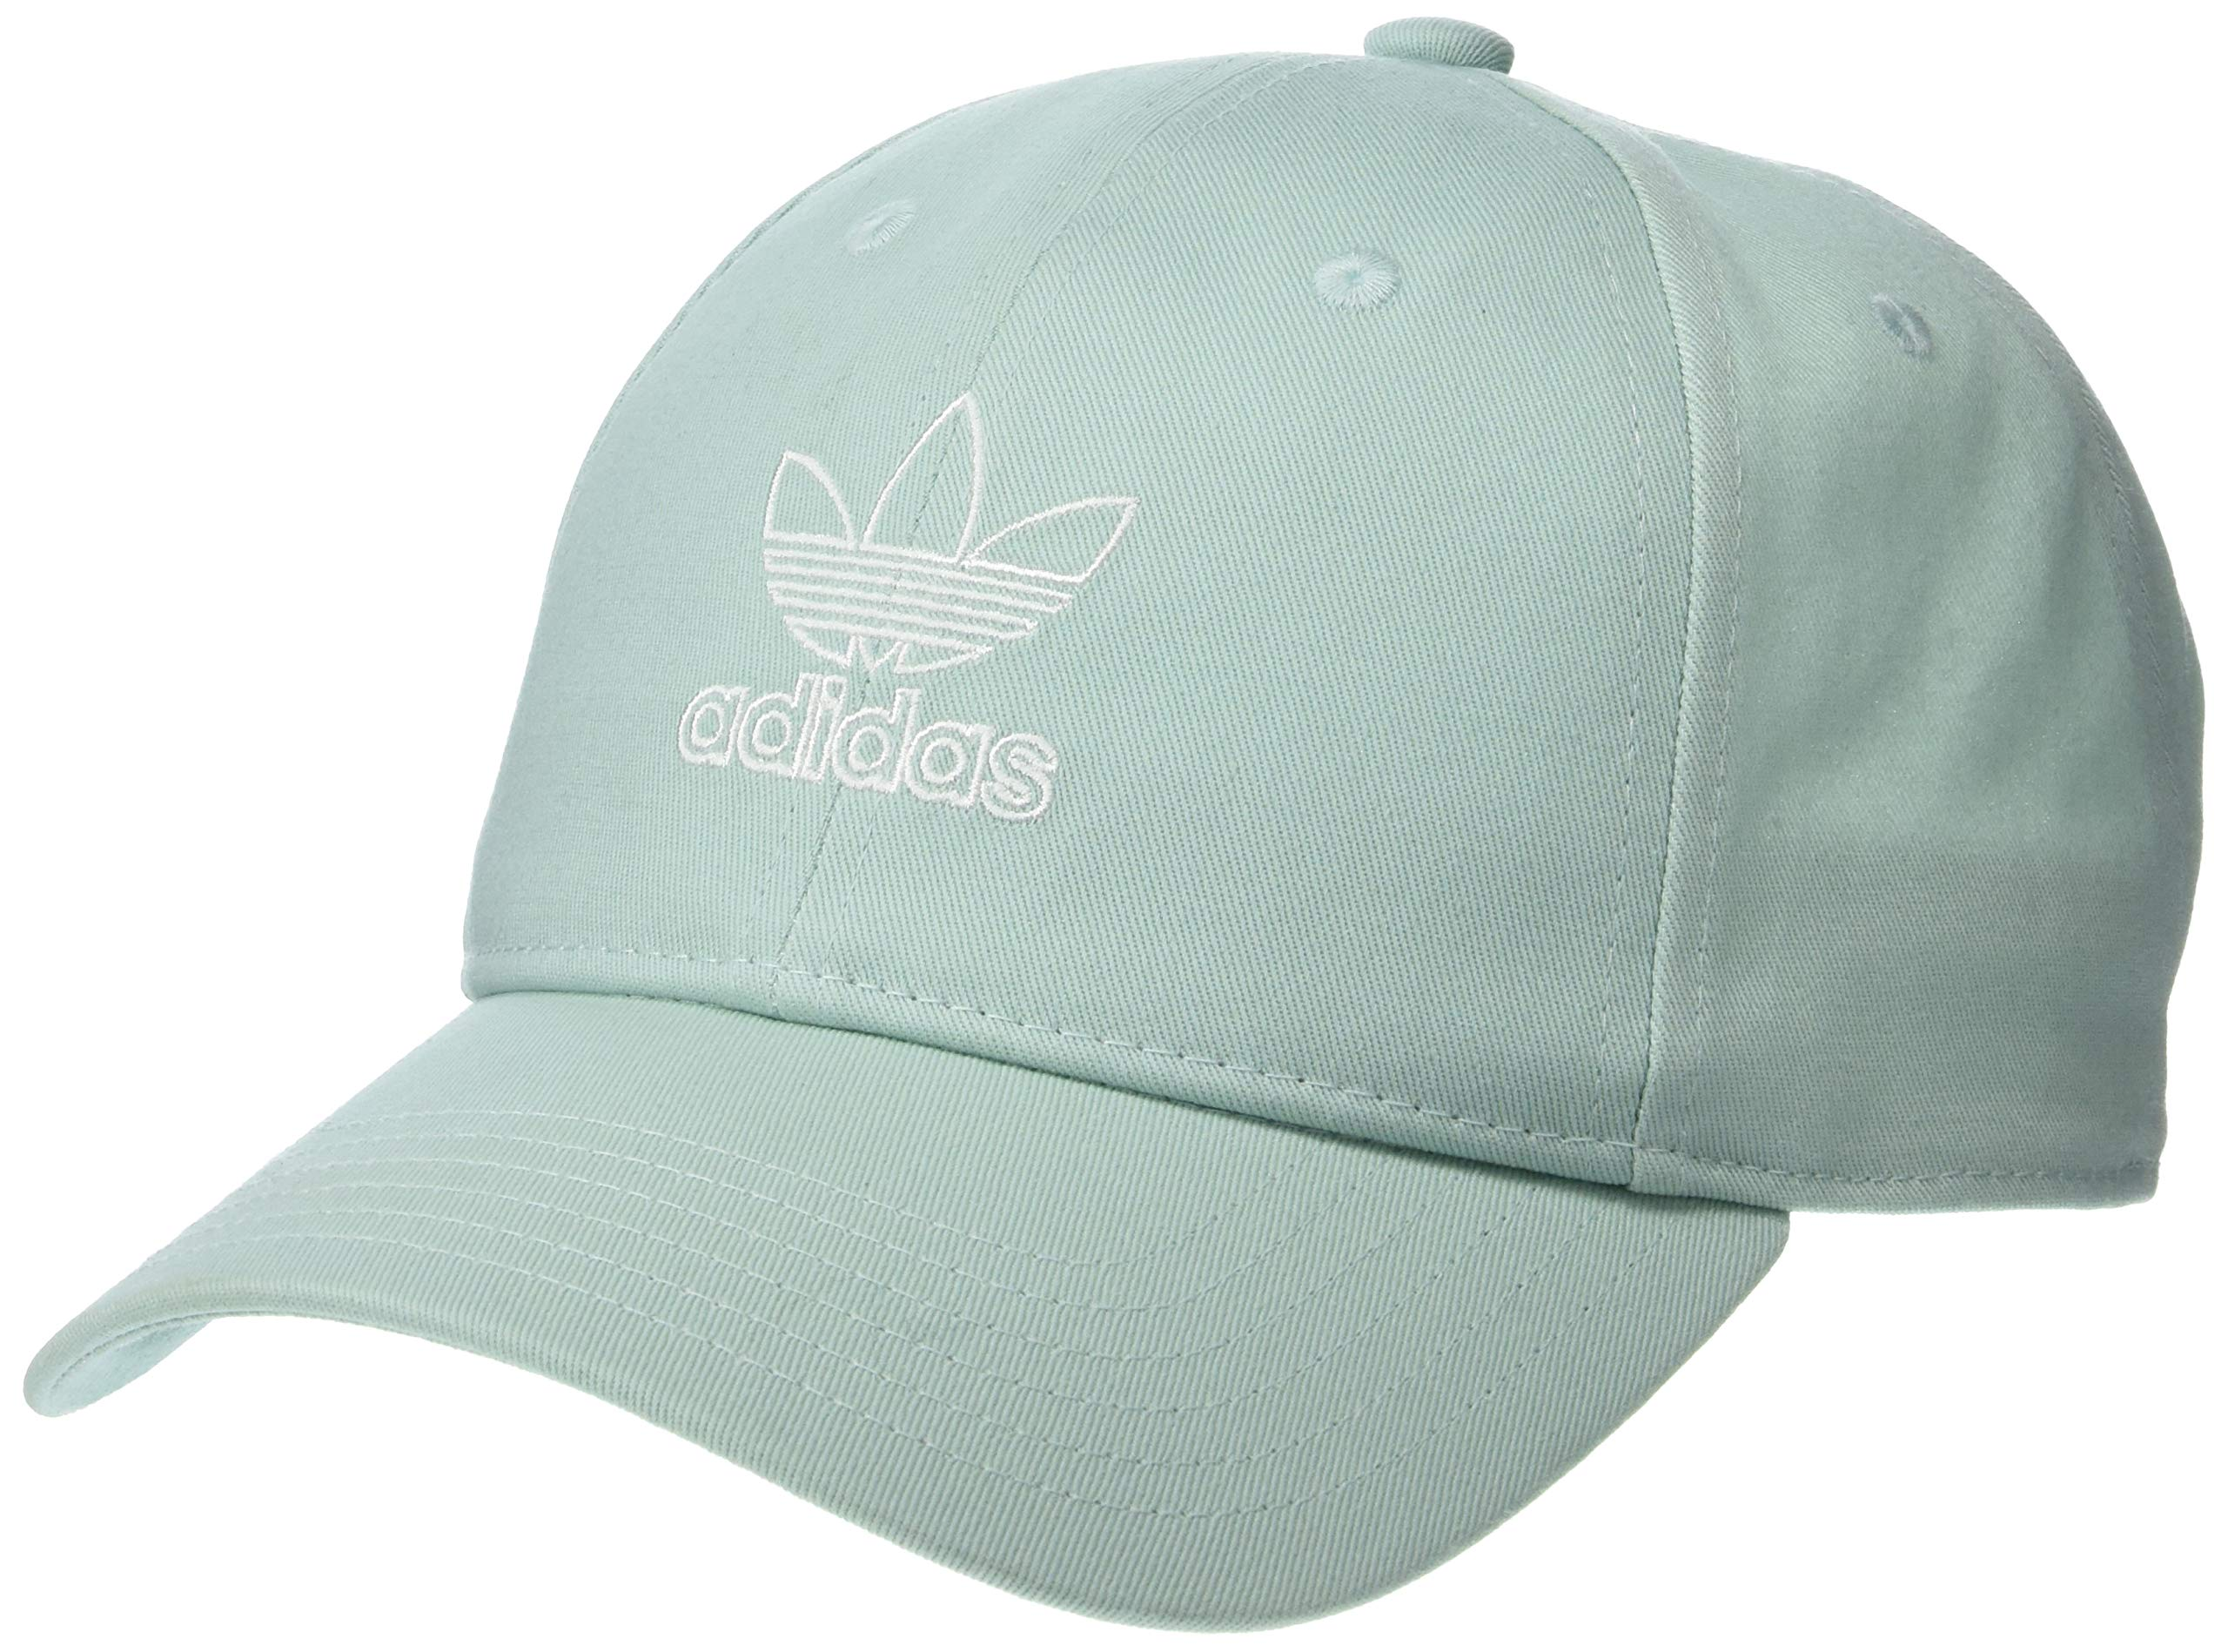 adidas Women's Originals Outline Logo Relaxed Adjustable Cap, Ash Green/White, One Size by adidas (Image #1)